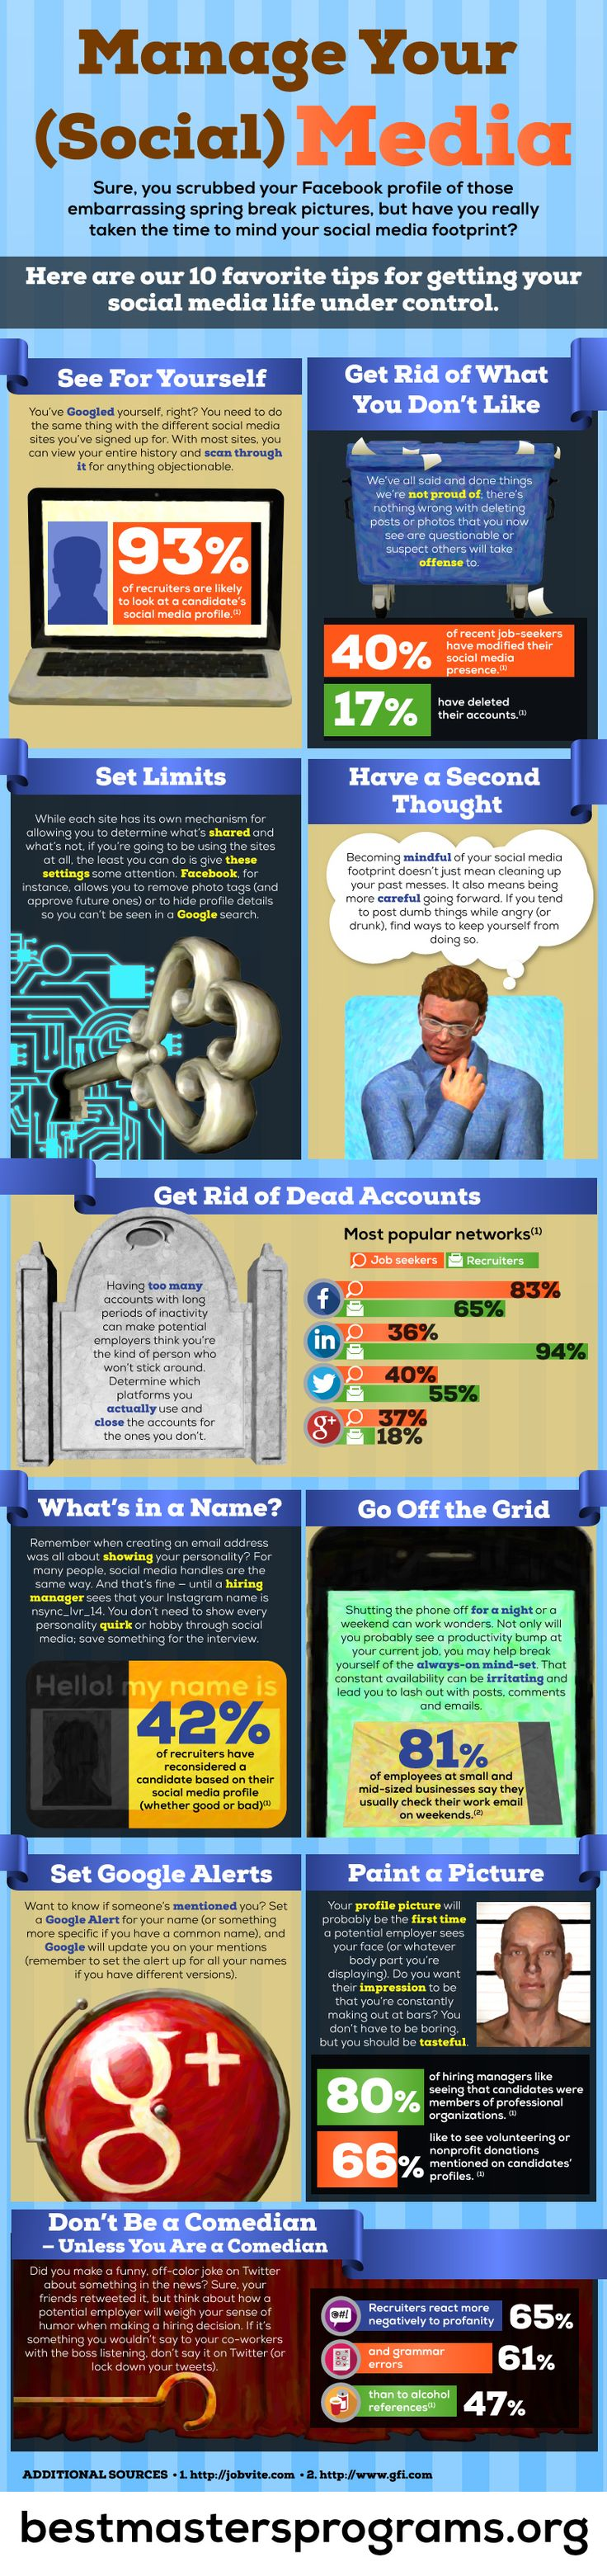 SOCIAL MEDIA -         Manage your (social) media - #SocialMedia #Infographic.